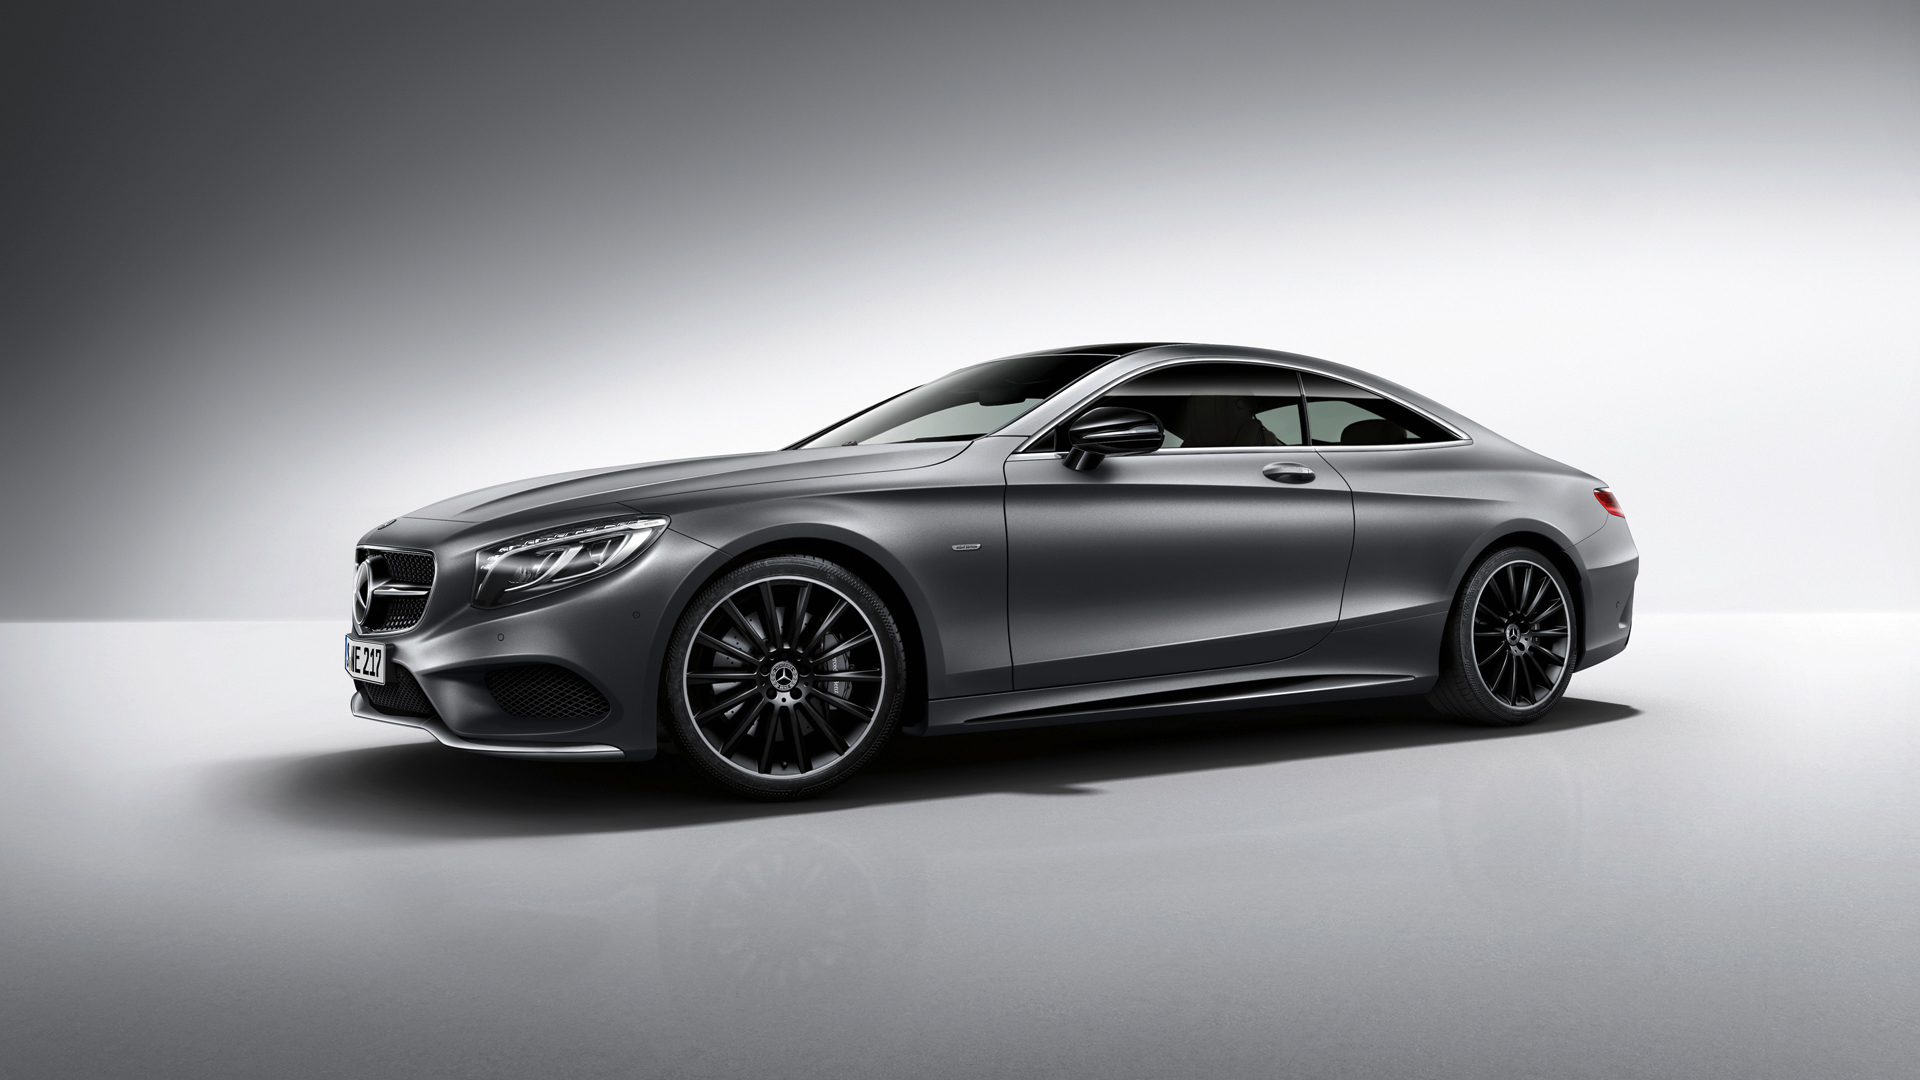 mercedes benz s class coupe night edition 2015 - 2015 Mercedes S Class White